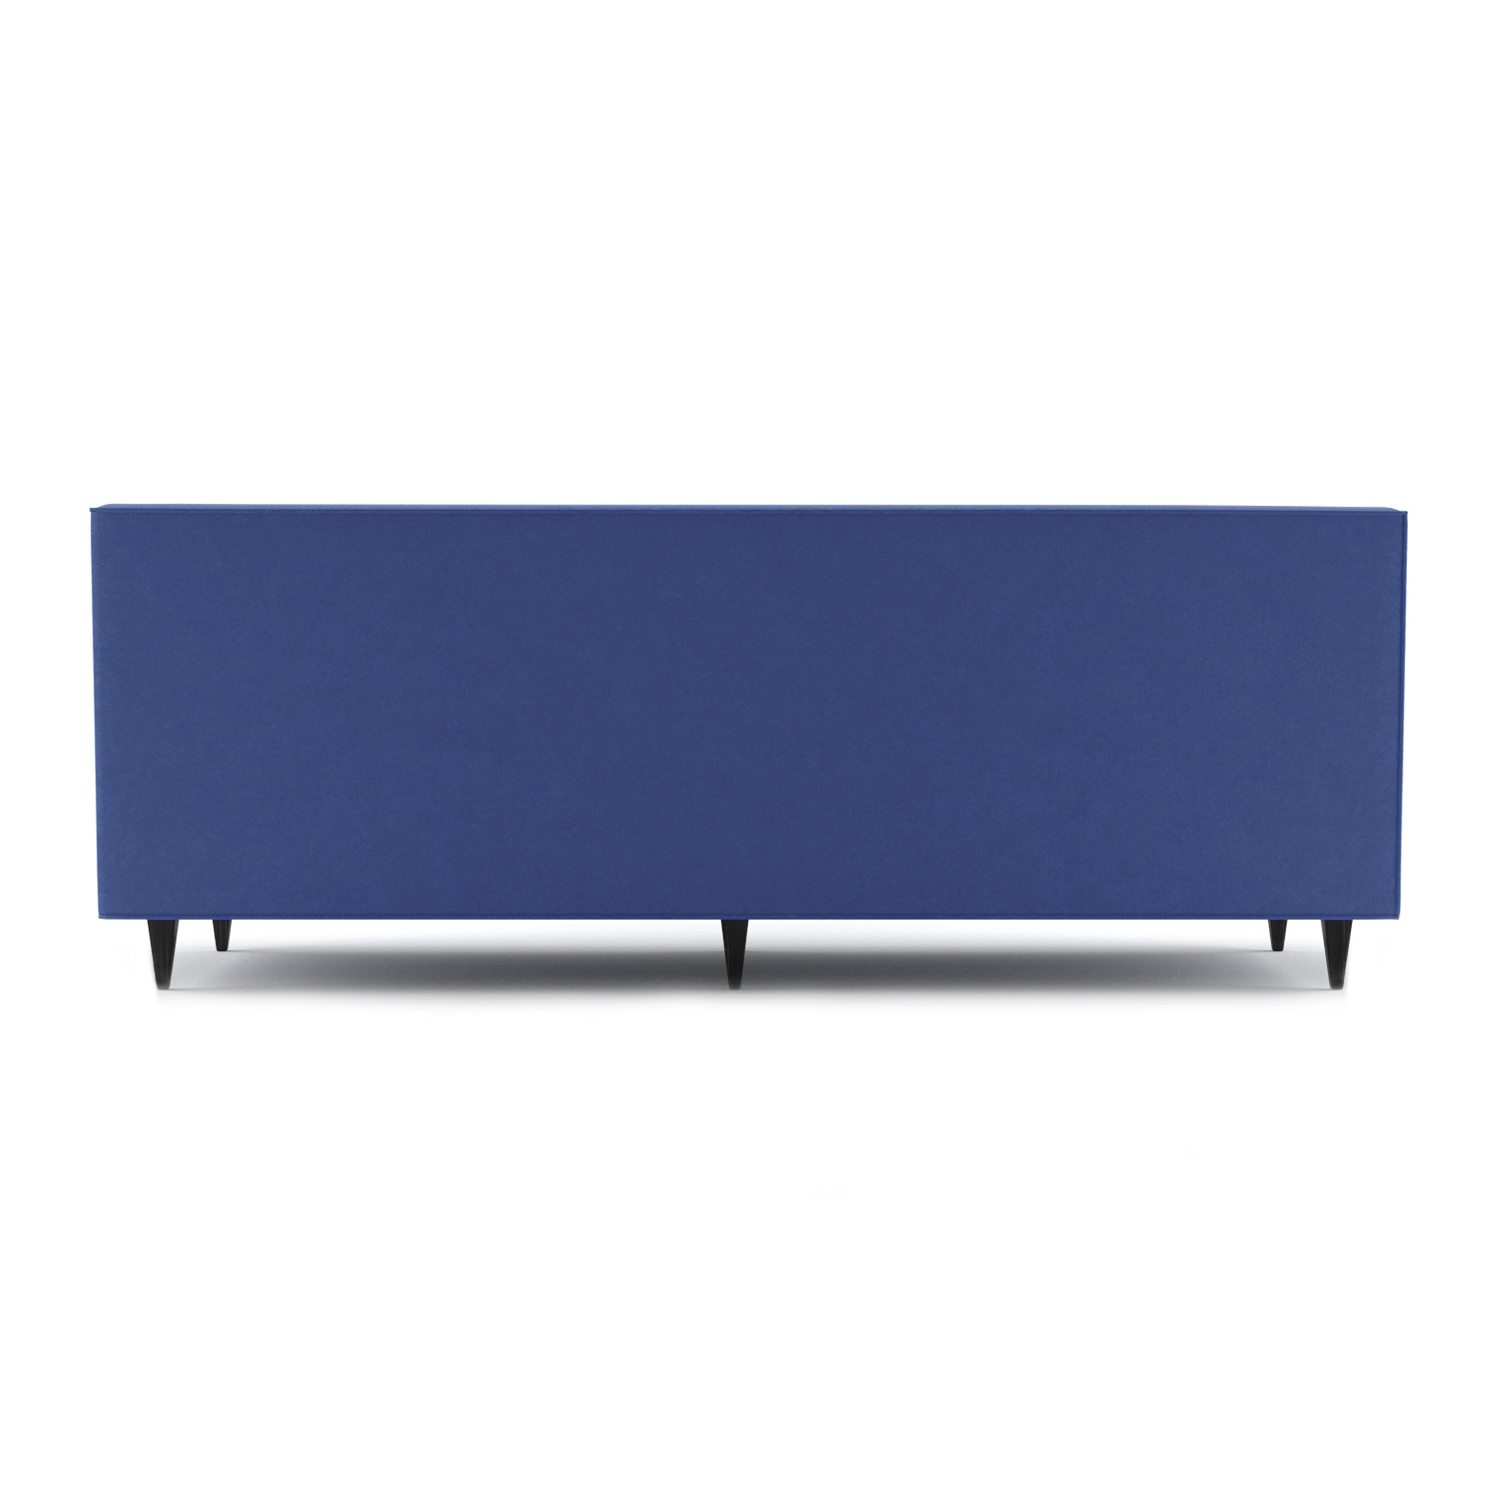 Bennett Three and a Half Seater Sofa by Bonham & Bonham Royal Blue 07